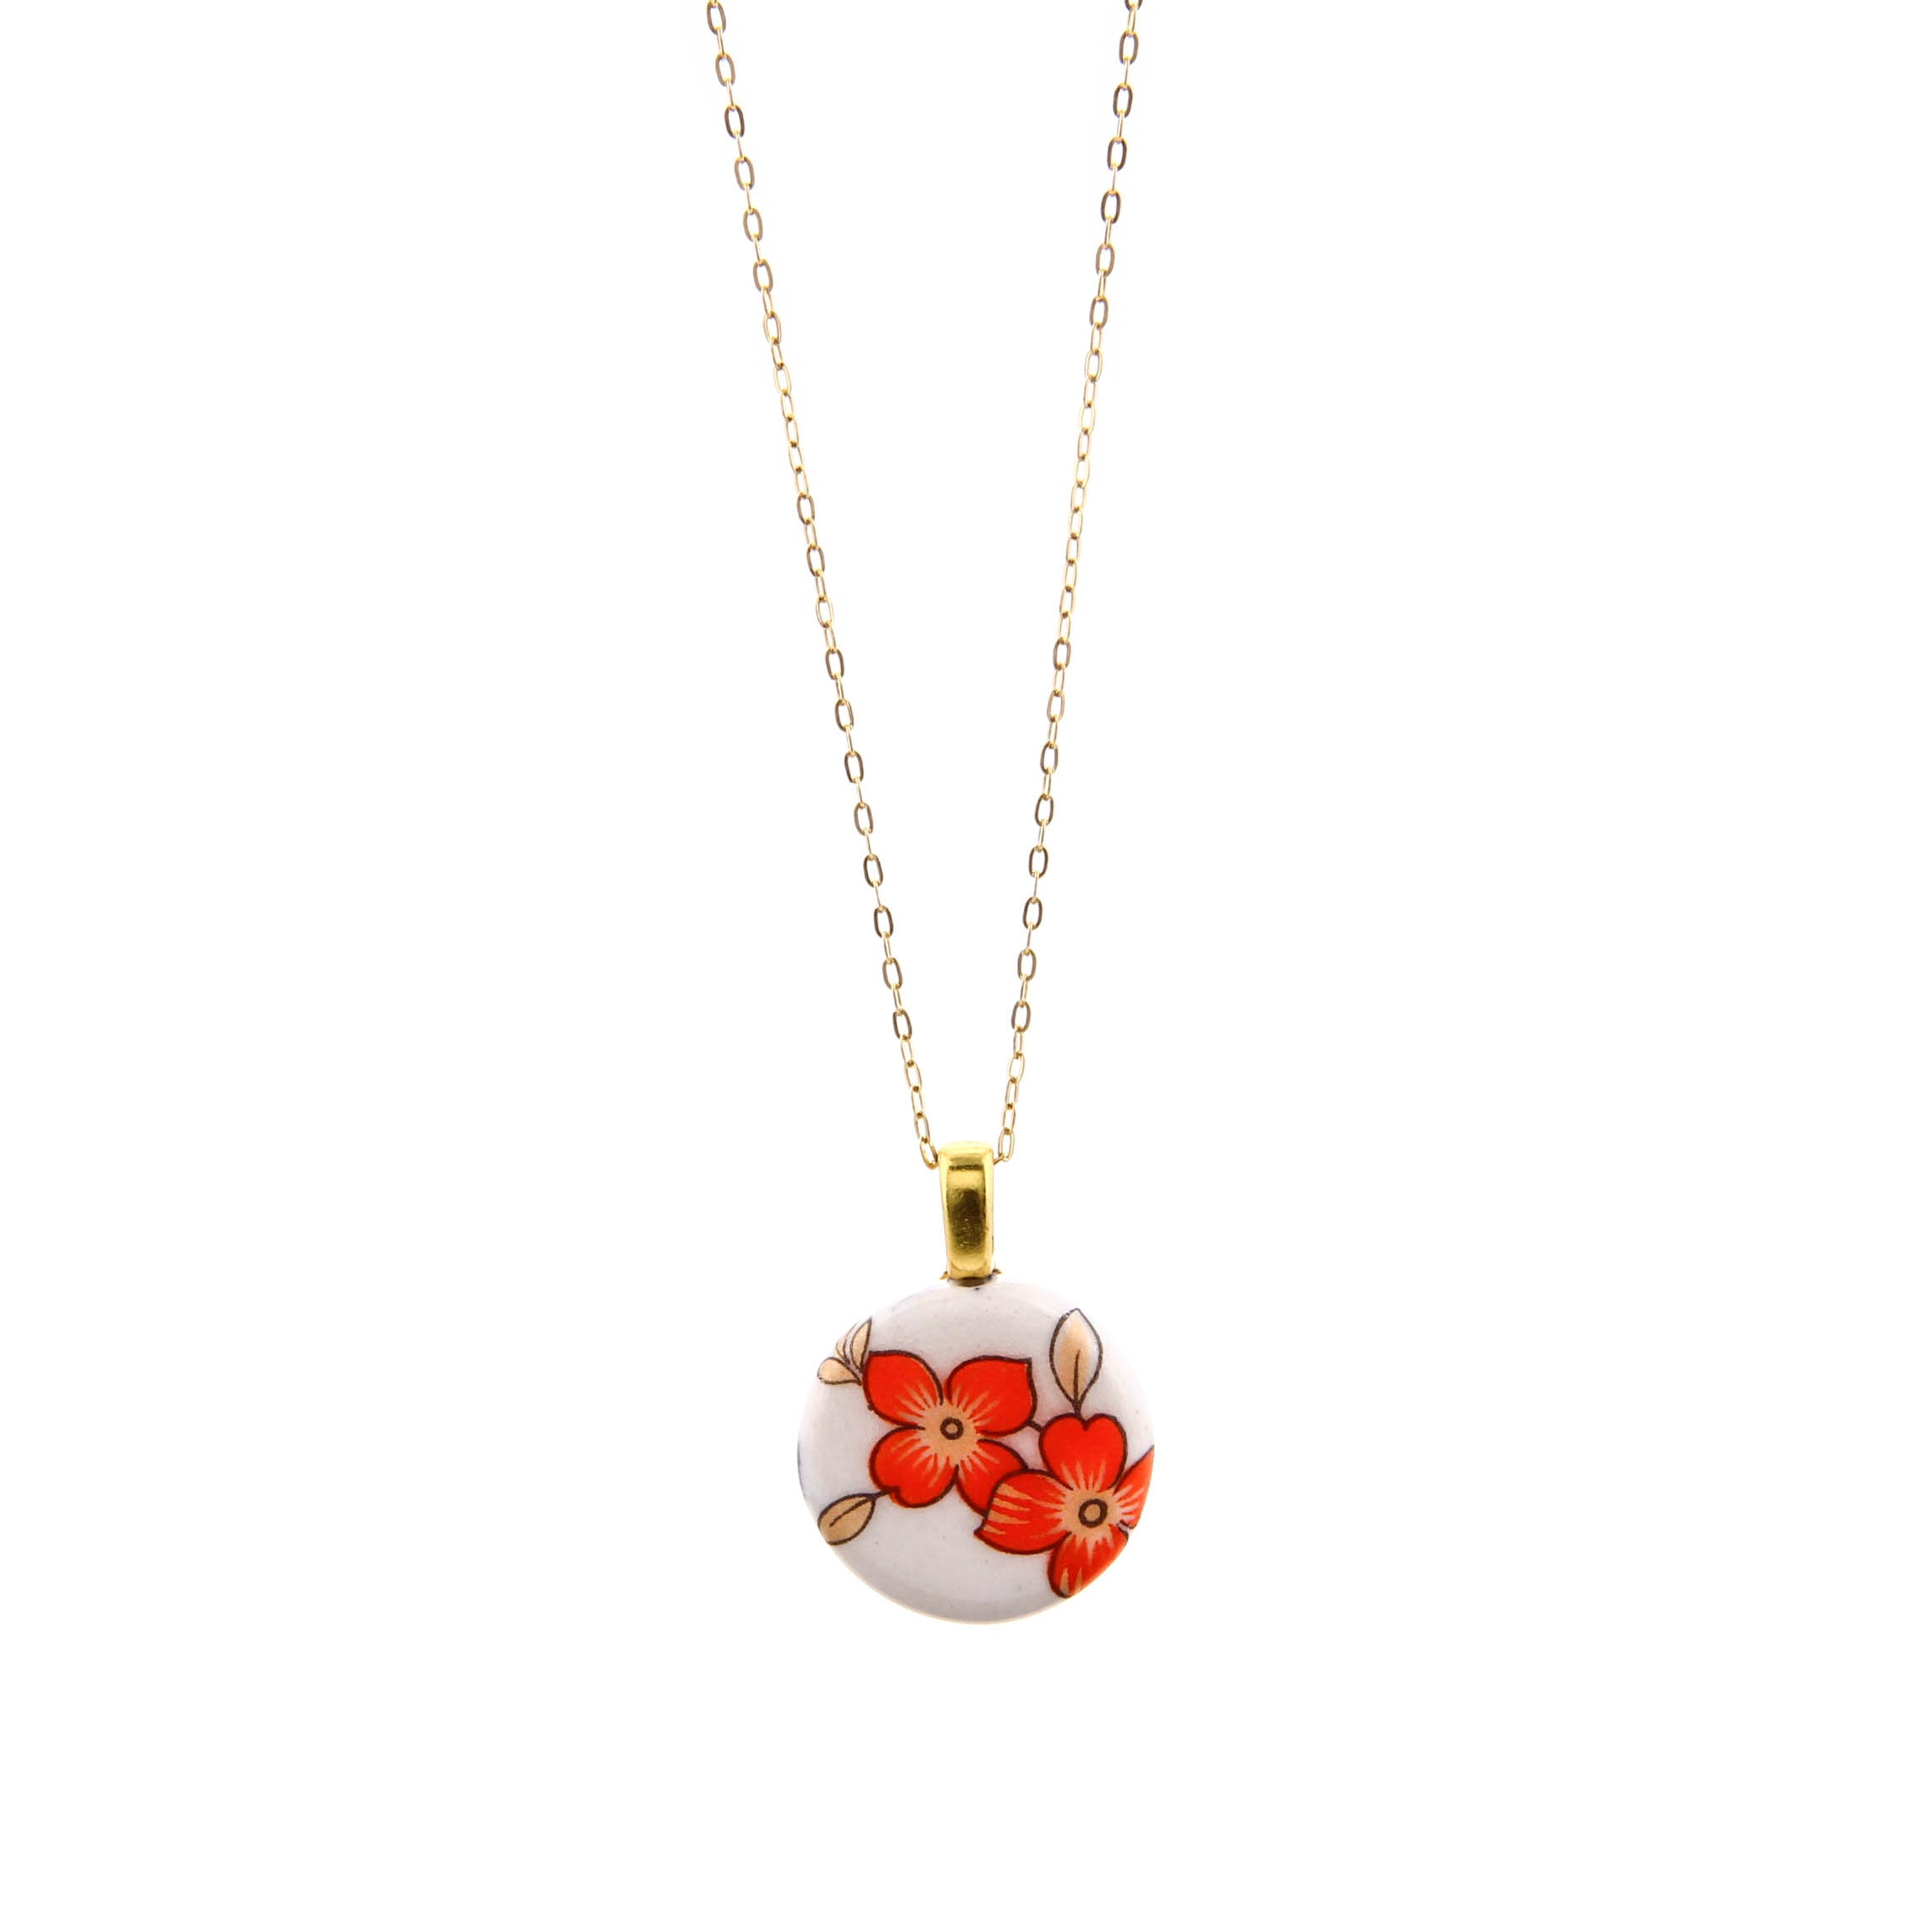 Melanie Sherman, Red Flower on White Porcelain Necklace